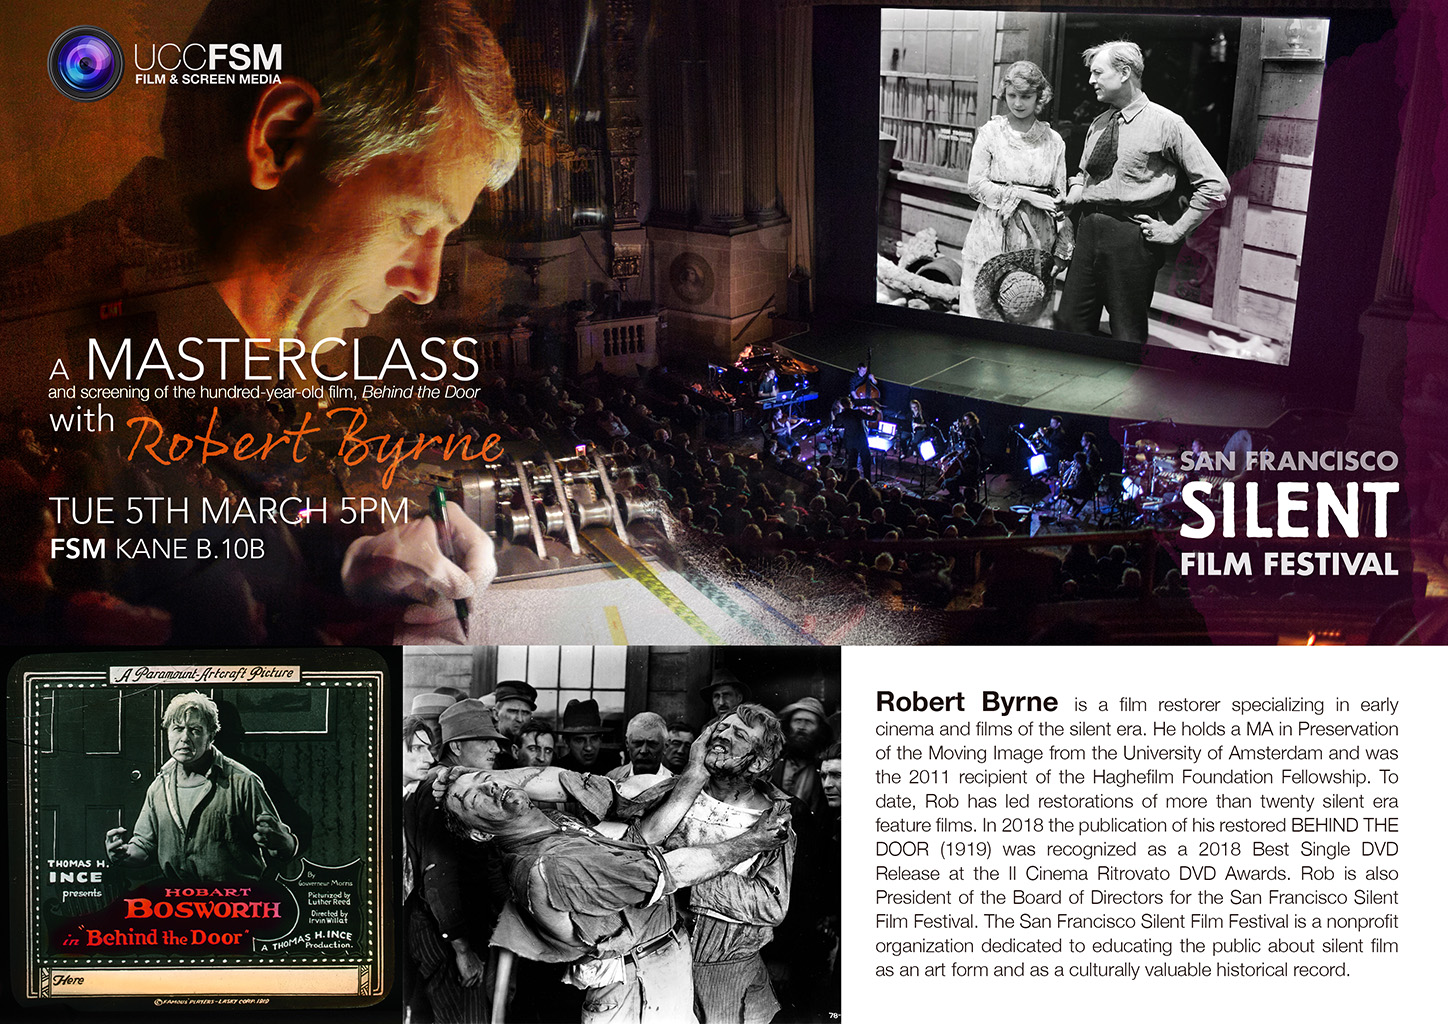 Robert Byrne Masterclass. Tues 5th March 5pm.